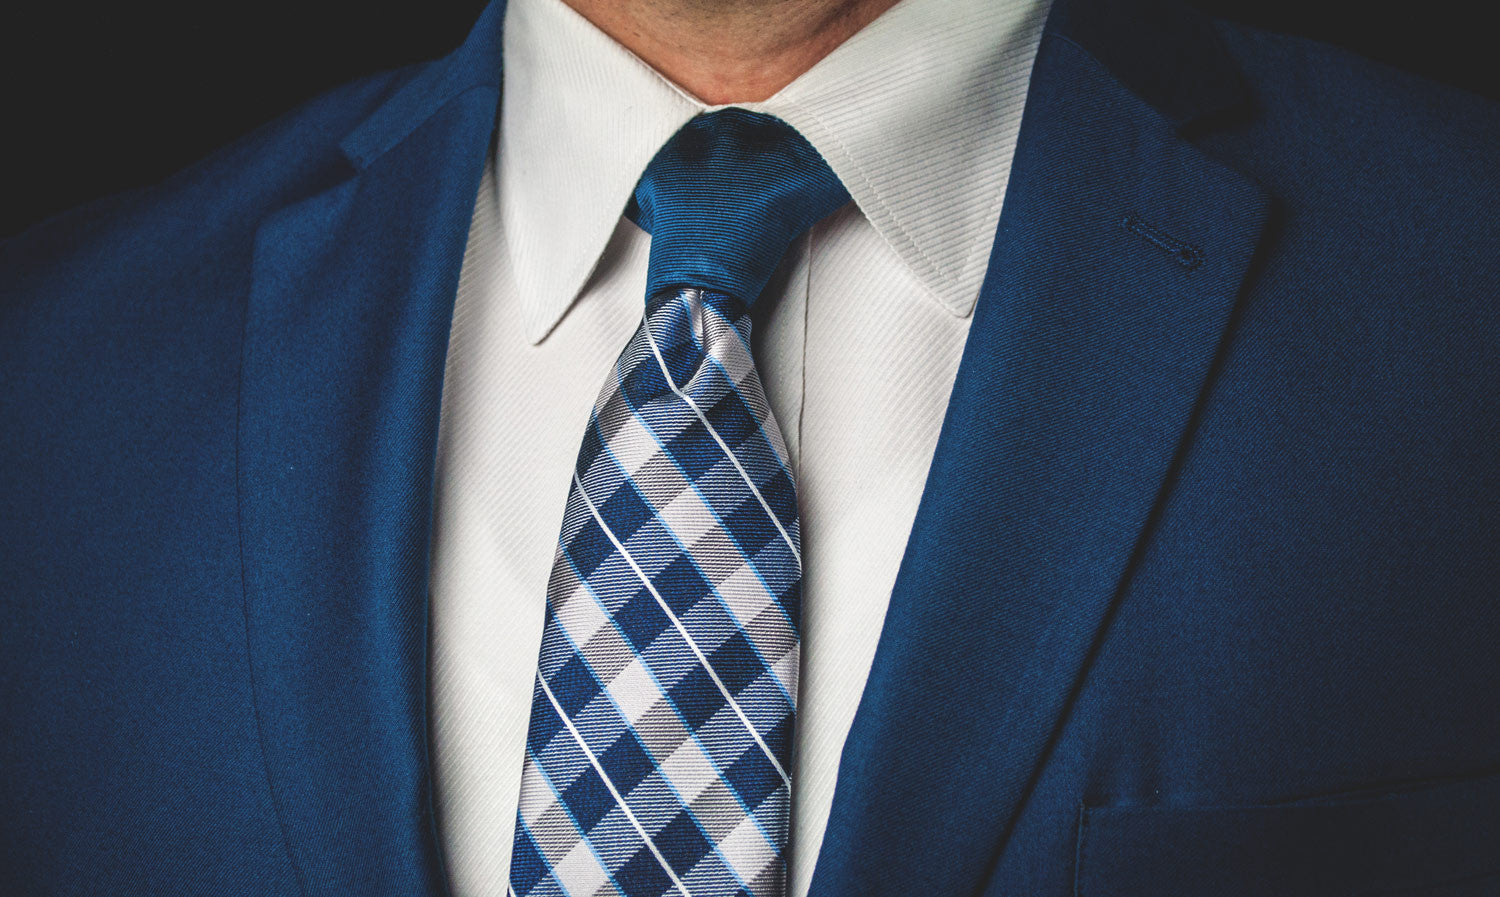 The Navy Blue Proper Knot™